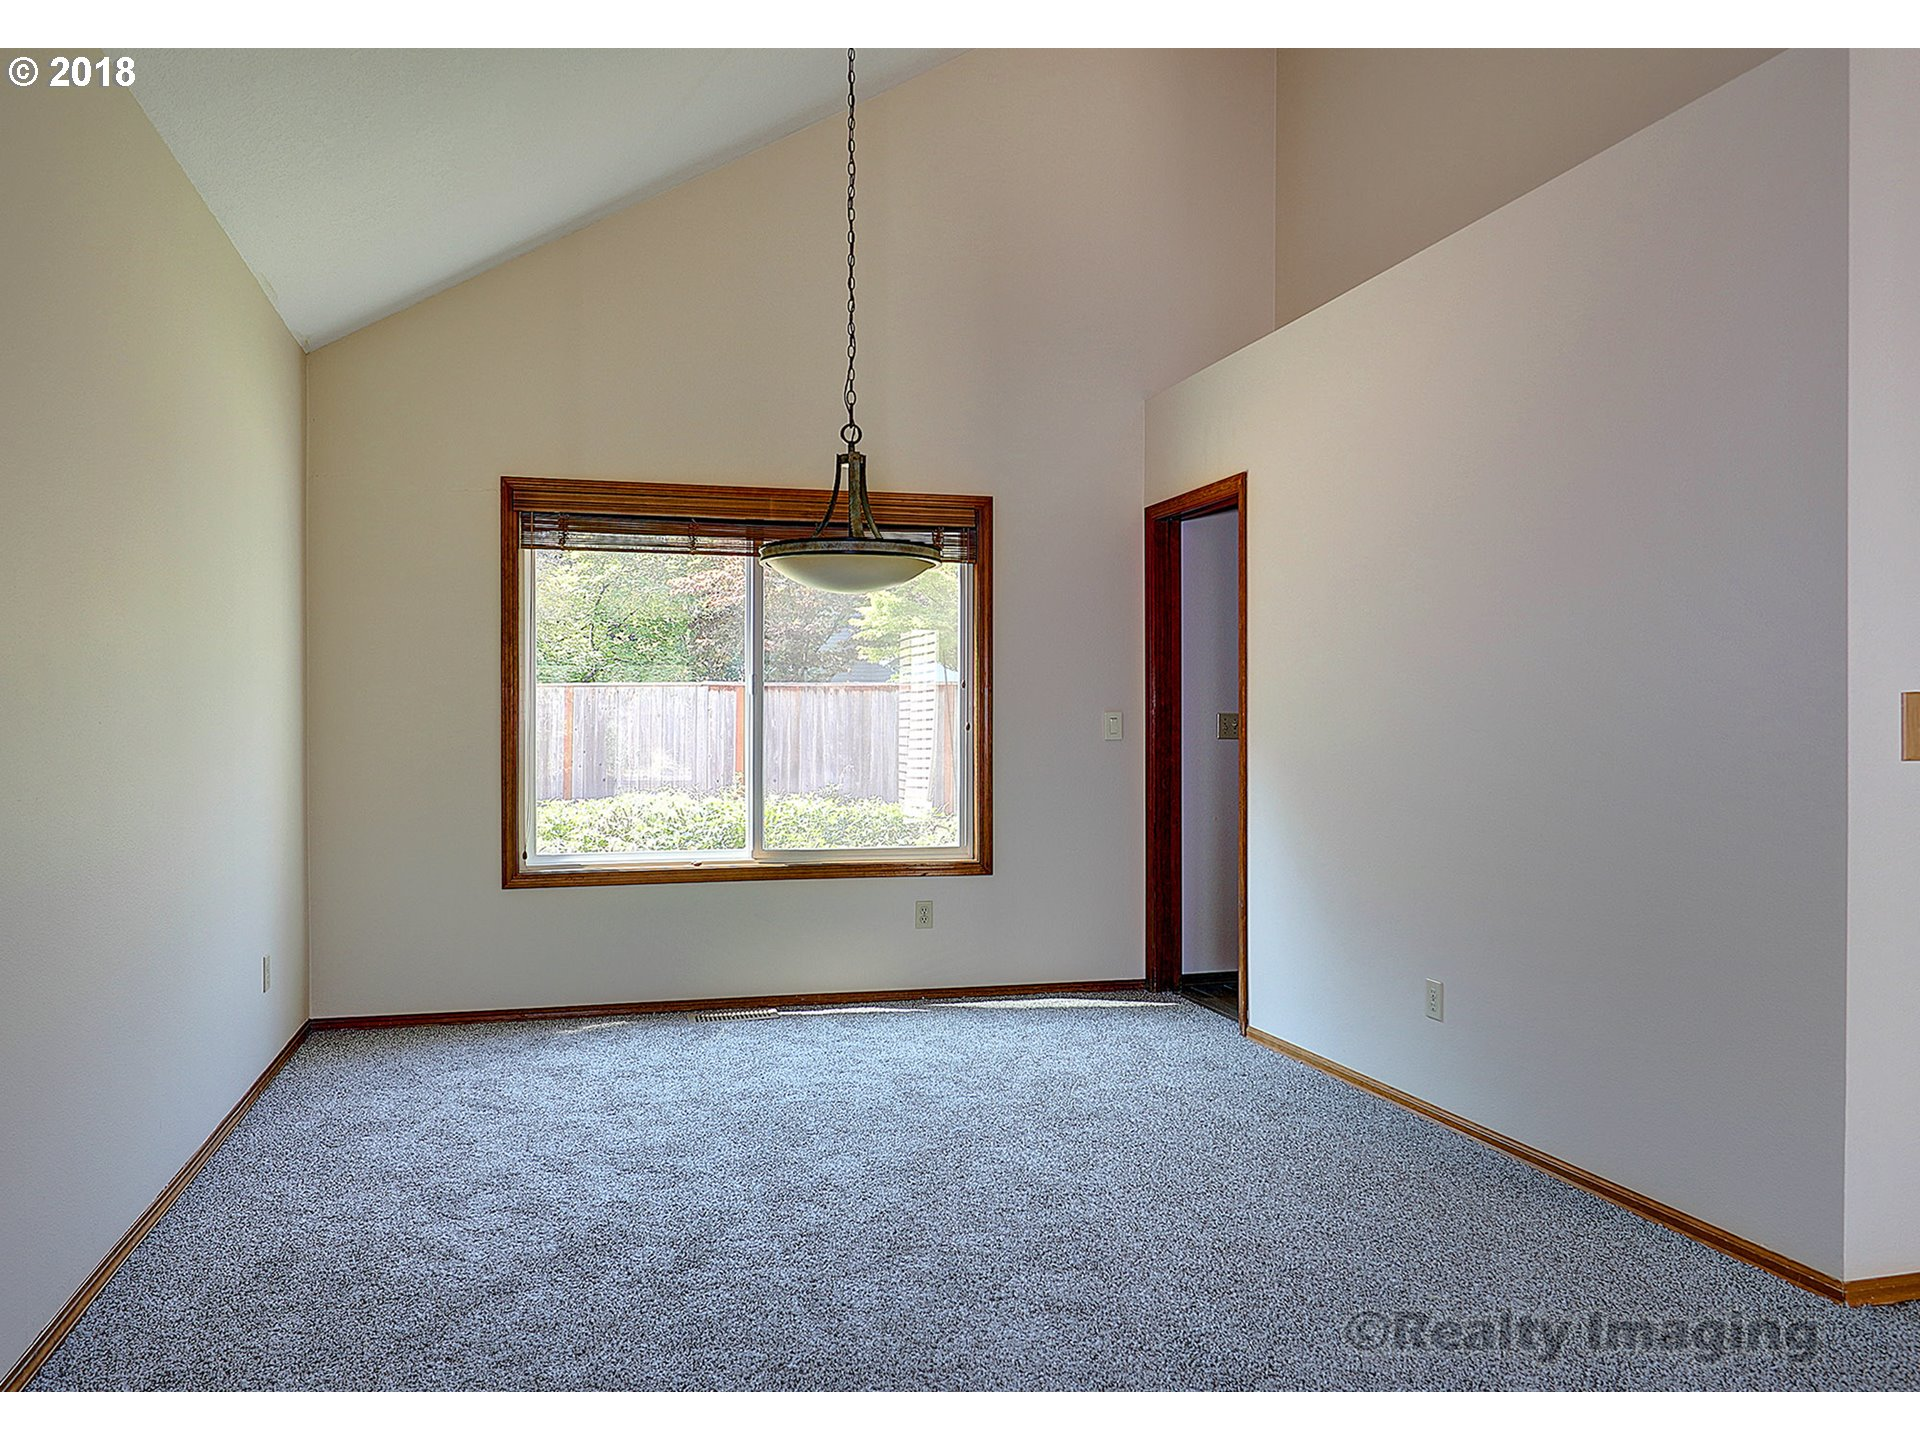 3357 NW 176TH CT Portland, OR 97229 - MLS #: 18609254